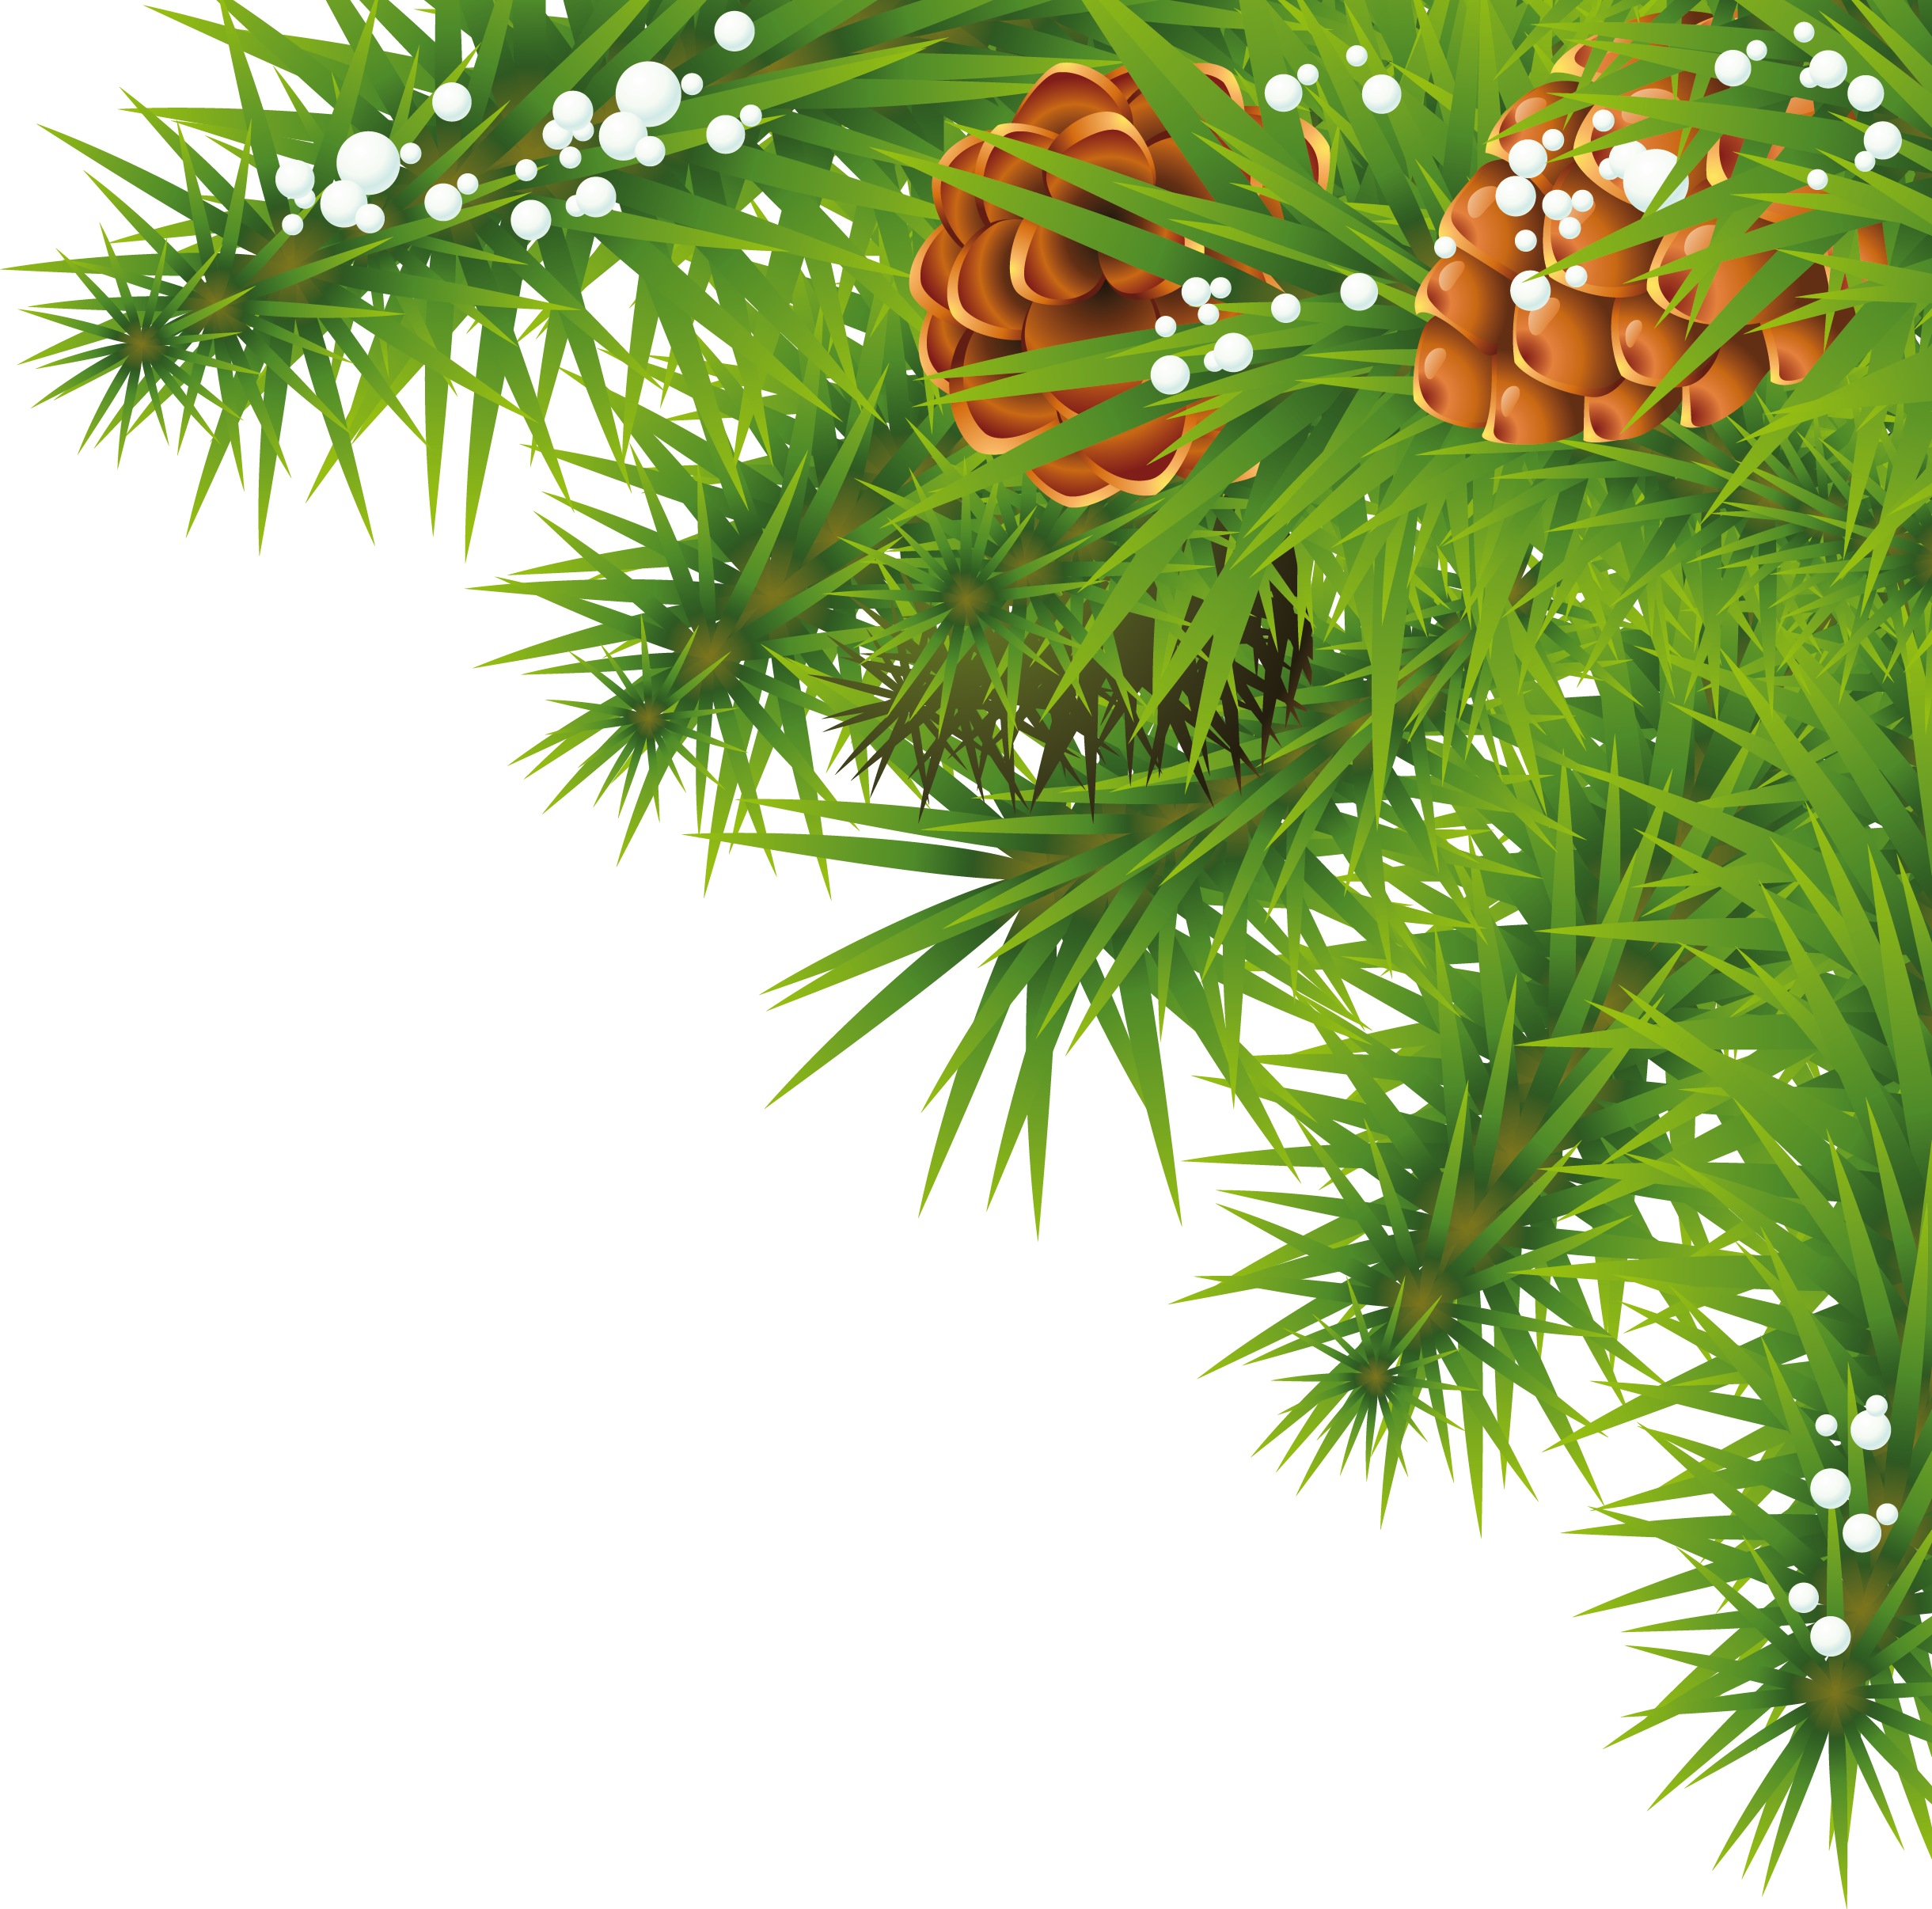 Christmas tree branch clipart vector royalty free stock Fir Tree PNG Image - PurePNG | Free transparent CC0 PNG Image Library vector royalty free stock